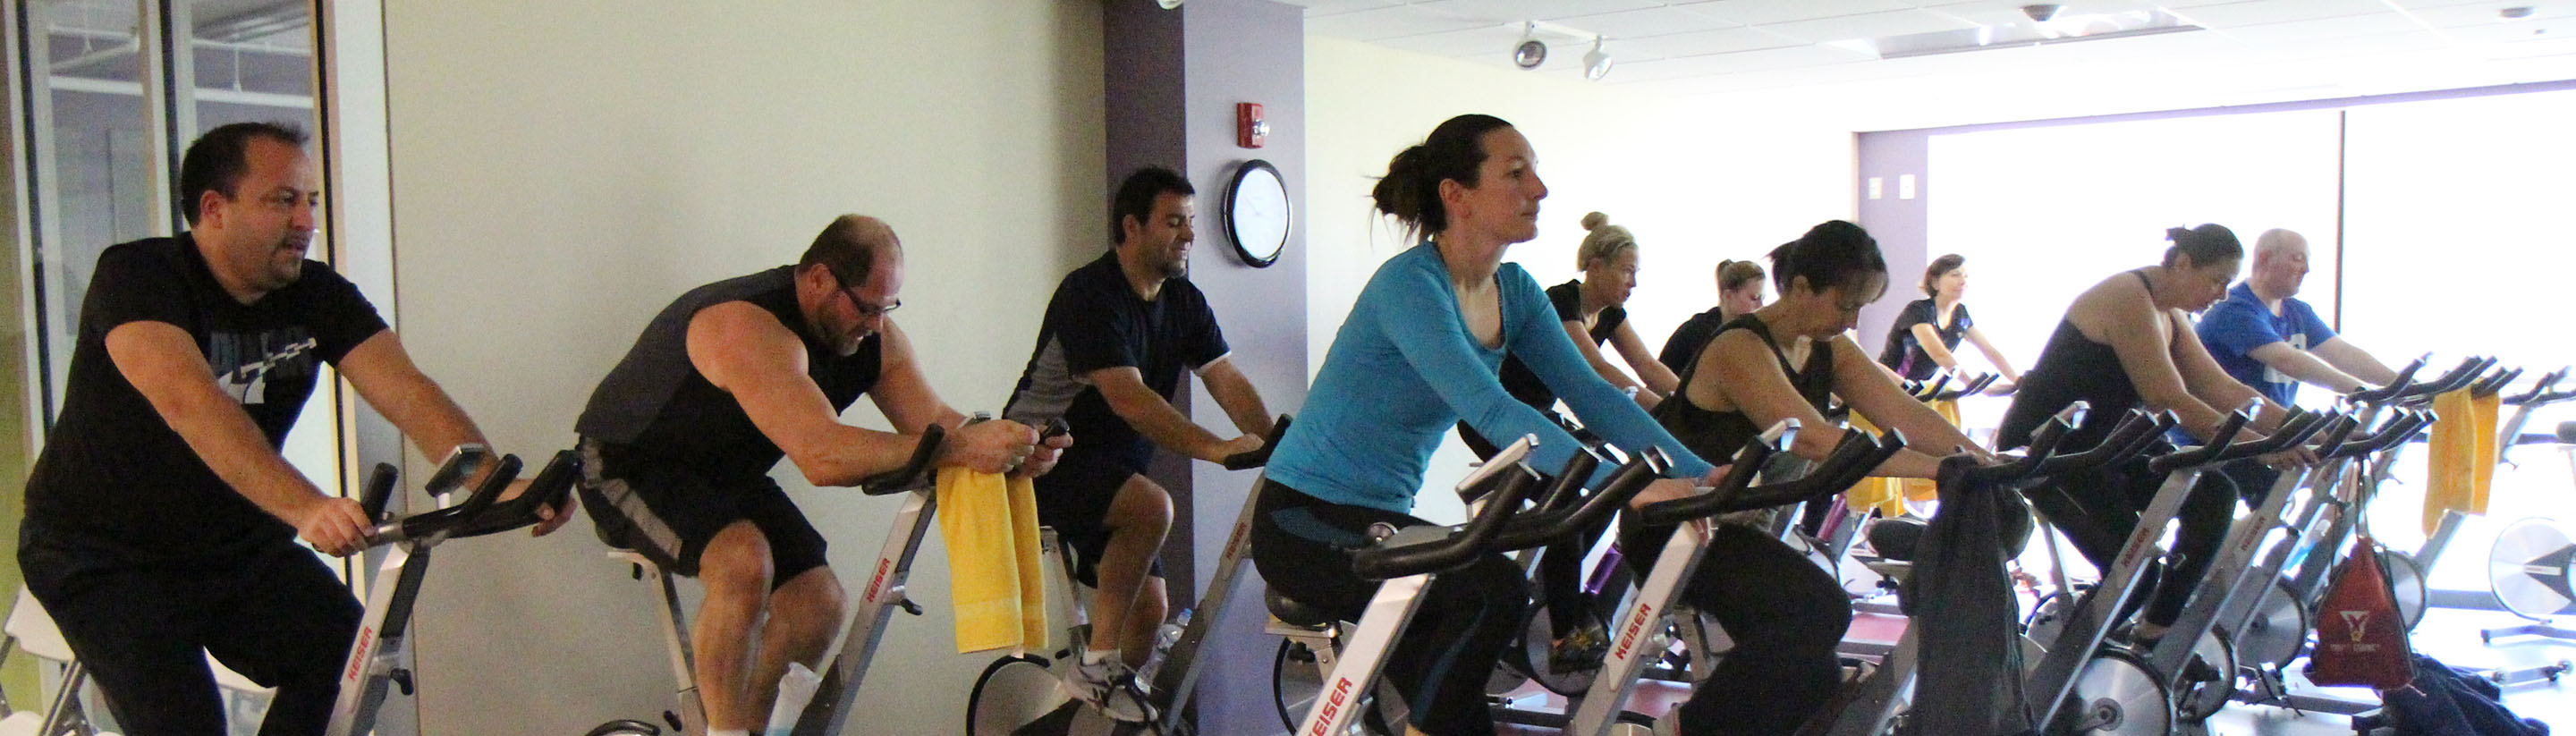 Schaumburg Park District gets funky with 60's themed cycling class!